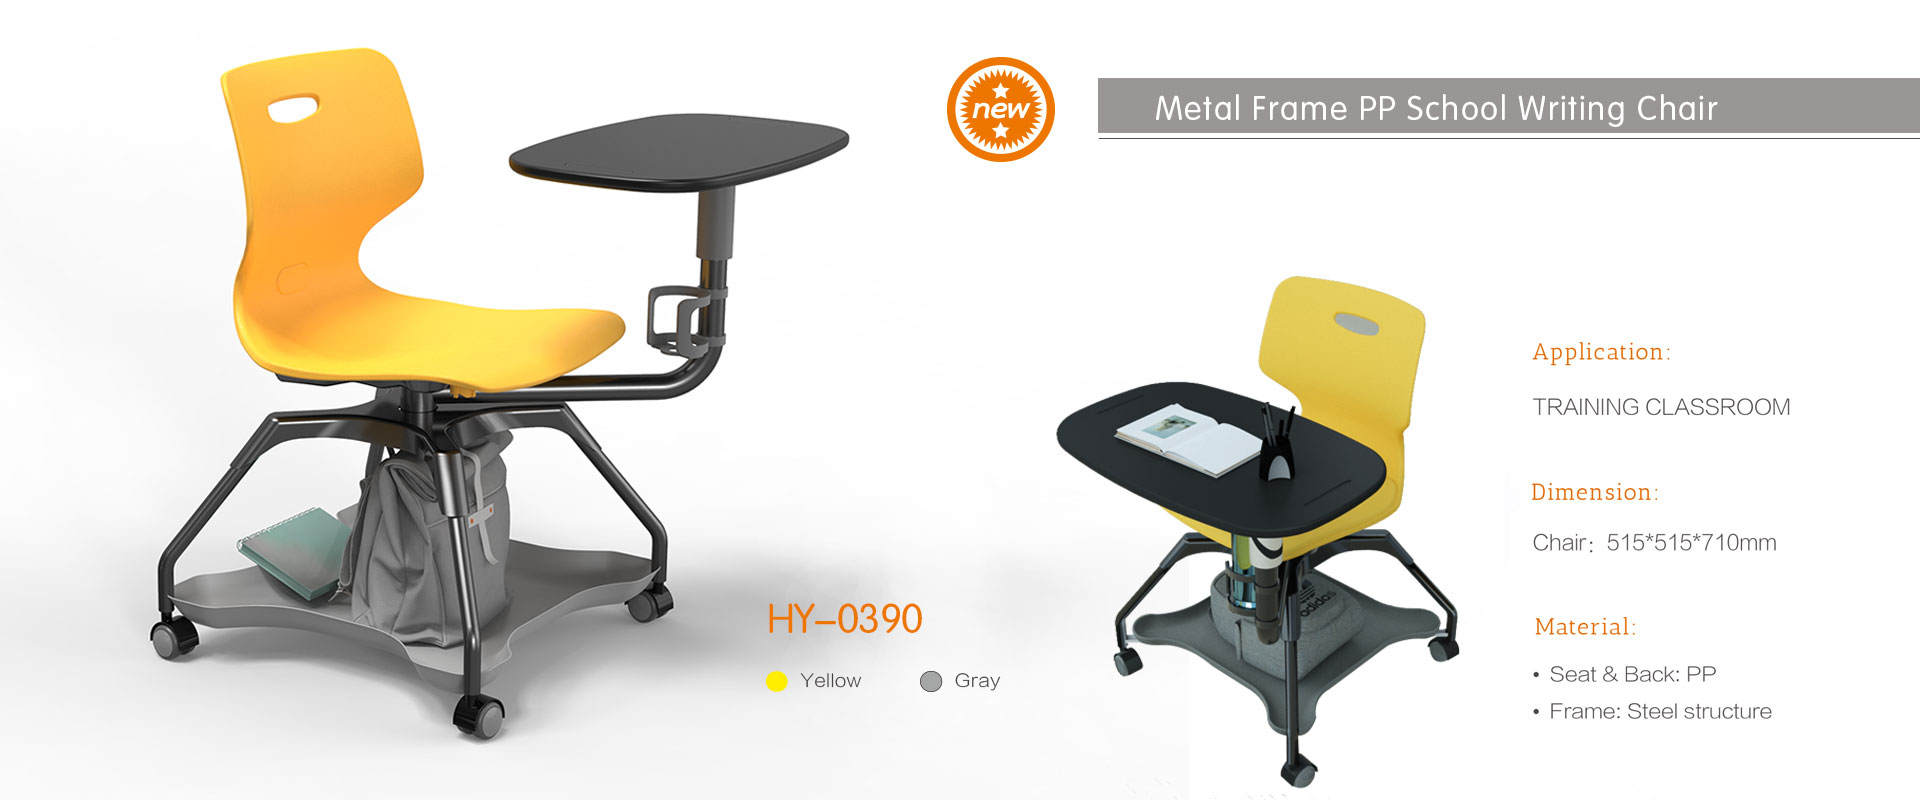 New design training classroom writing chair